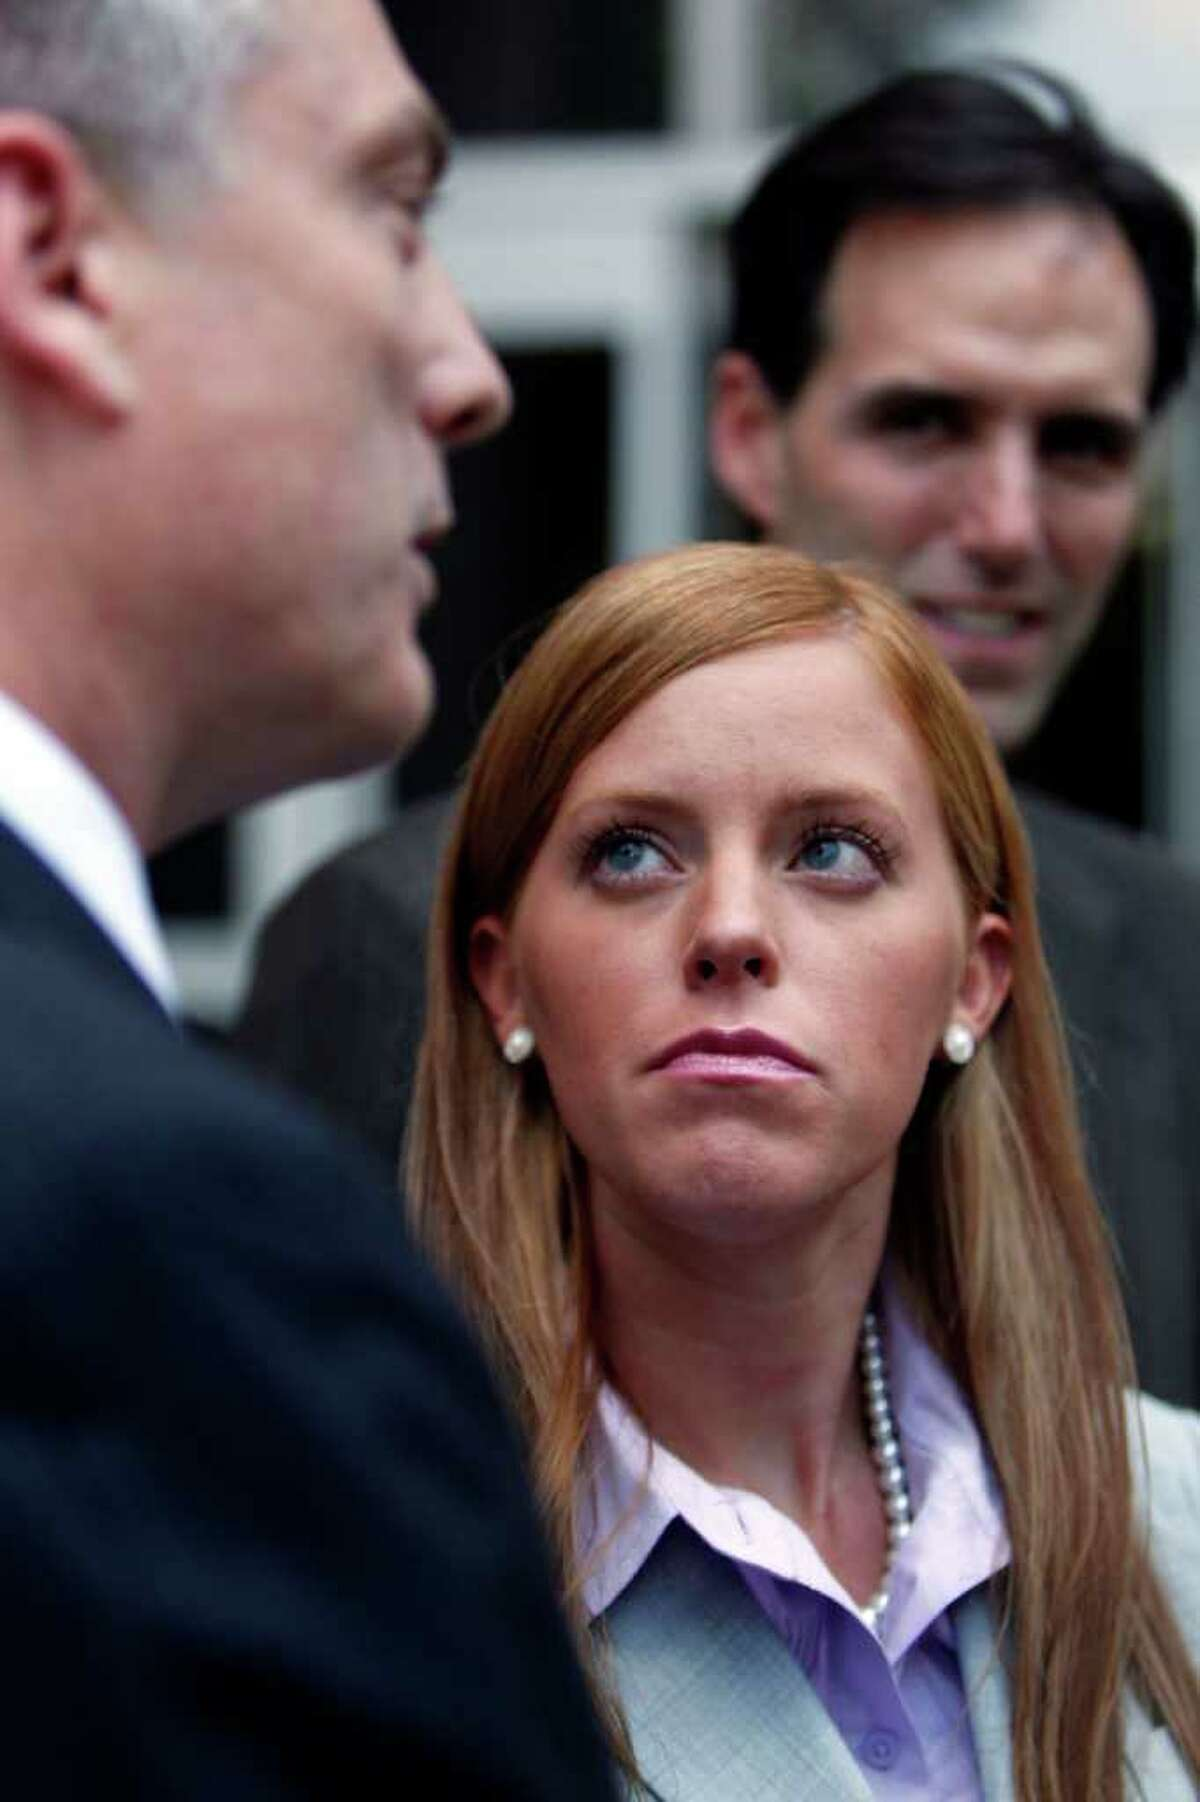 Next to her attorneys Todd Kelly (left) and Ron Estefan (right), Jamie Leigh Jones,who said she was raped while working for KBR, a Halliburton subsidiary, in Iraq in 2005 watches Kelly speak to the media outside the Bob Casey Federal Courthouse as her civil trial against the company began Tuesday, June 14, 2011, in Houston. Jones said she was drugged and sexually assaulted by her co-workers. ( Johnny Hanson / Houston Chronicle )